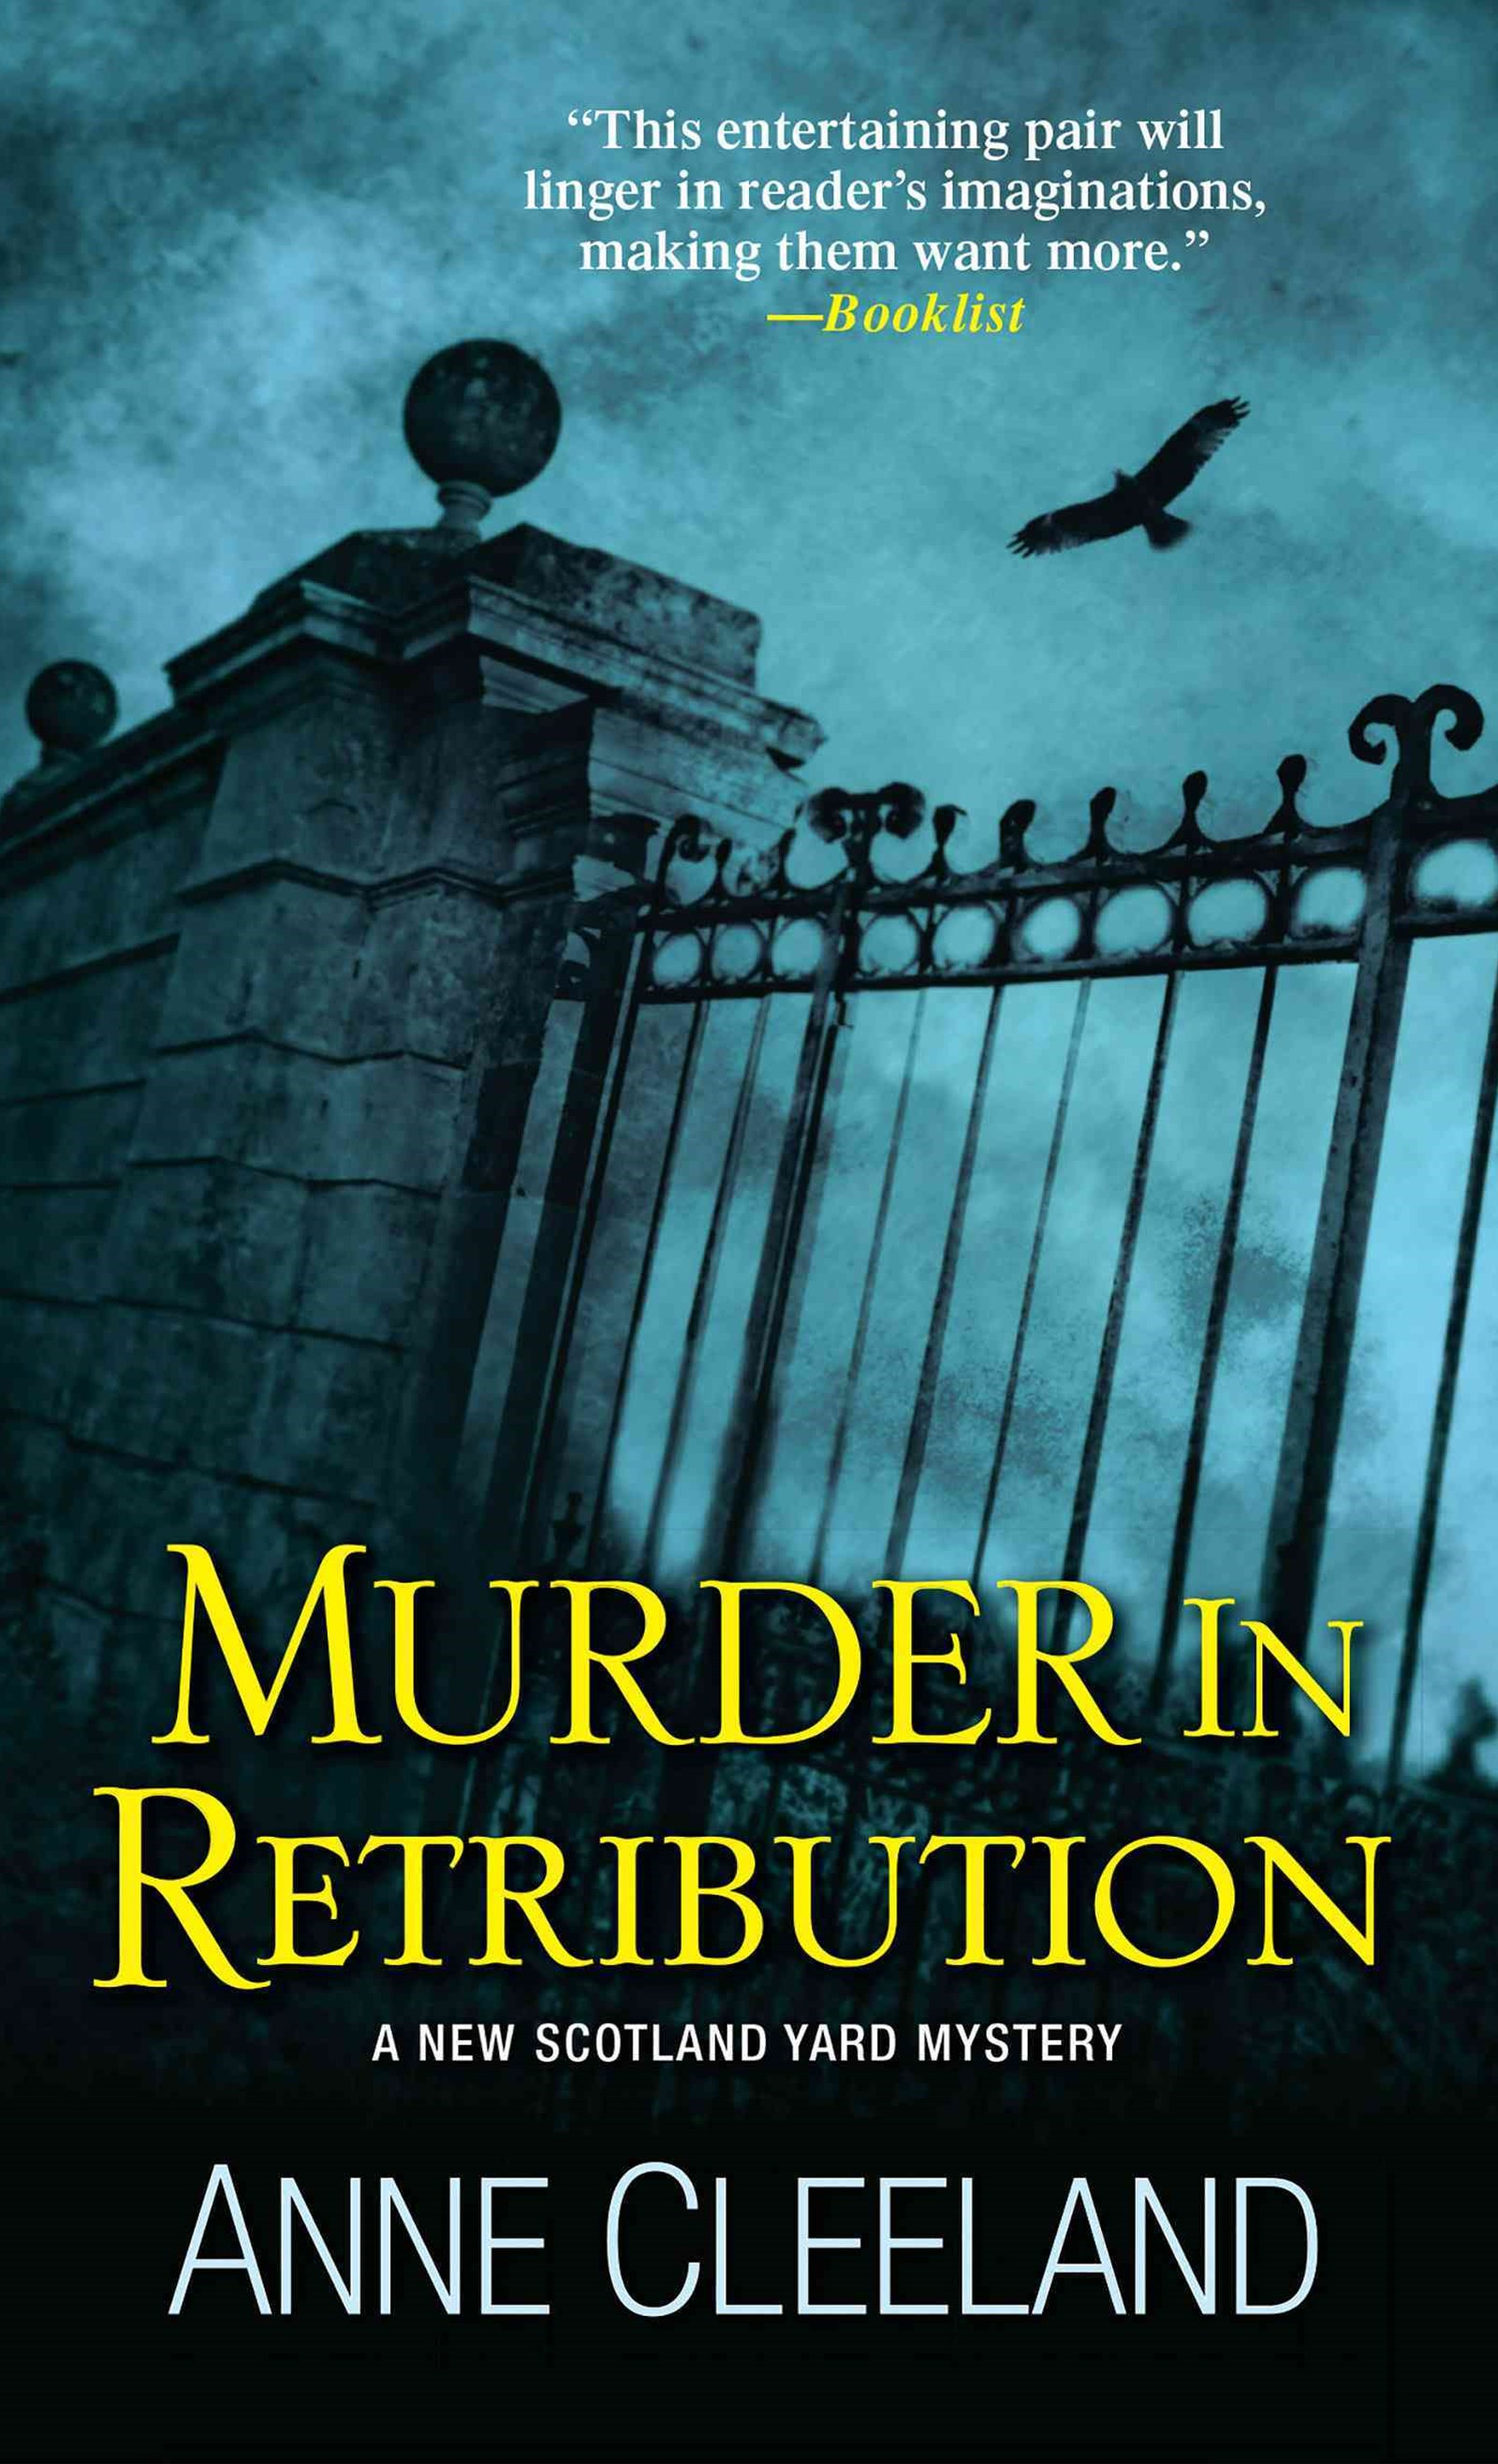 Murder in Retribution